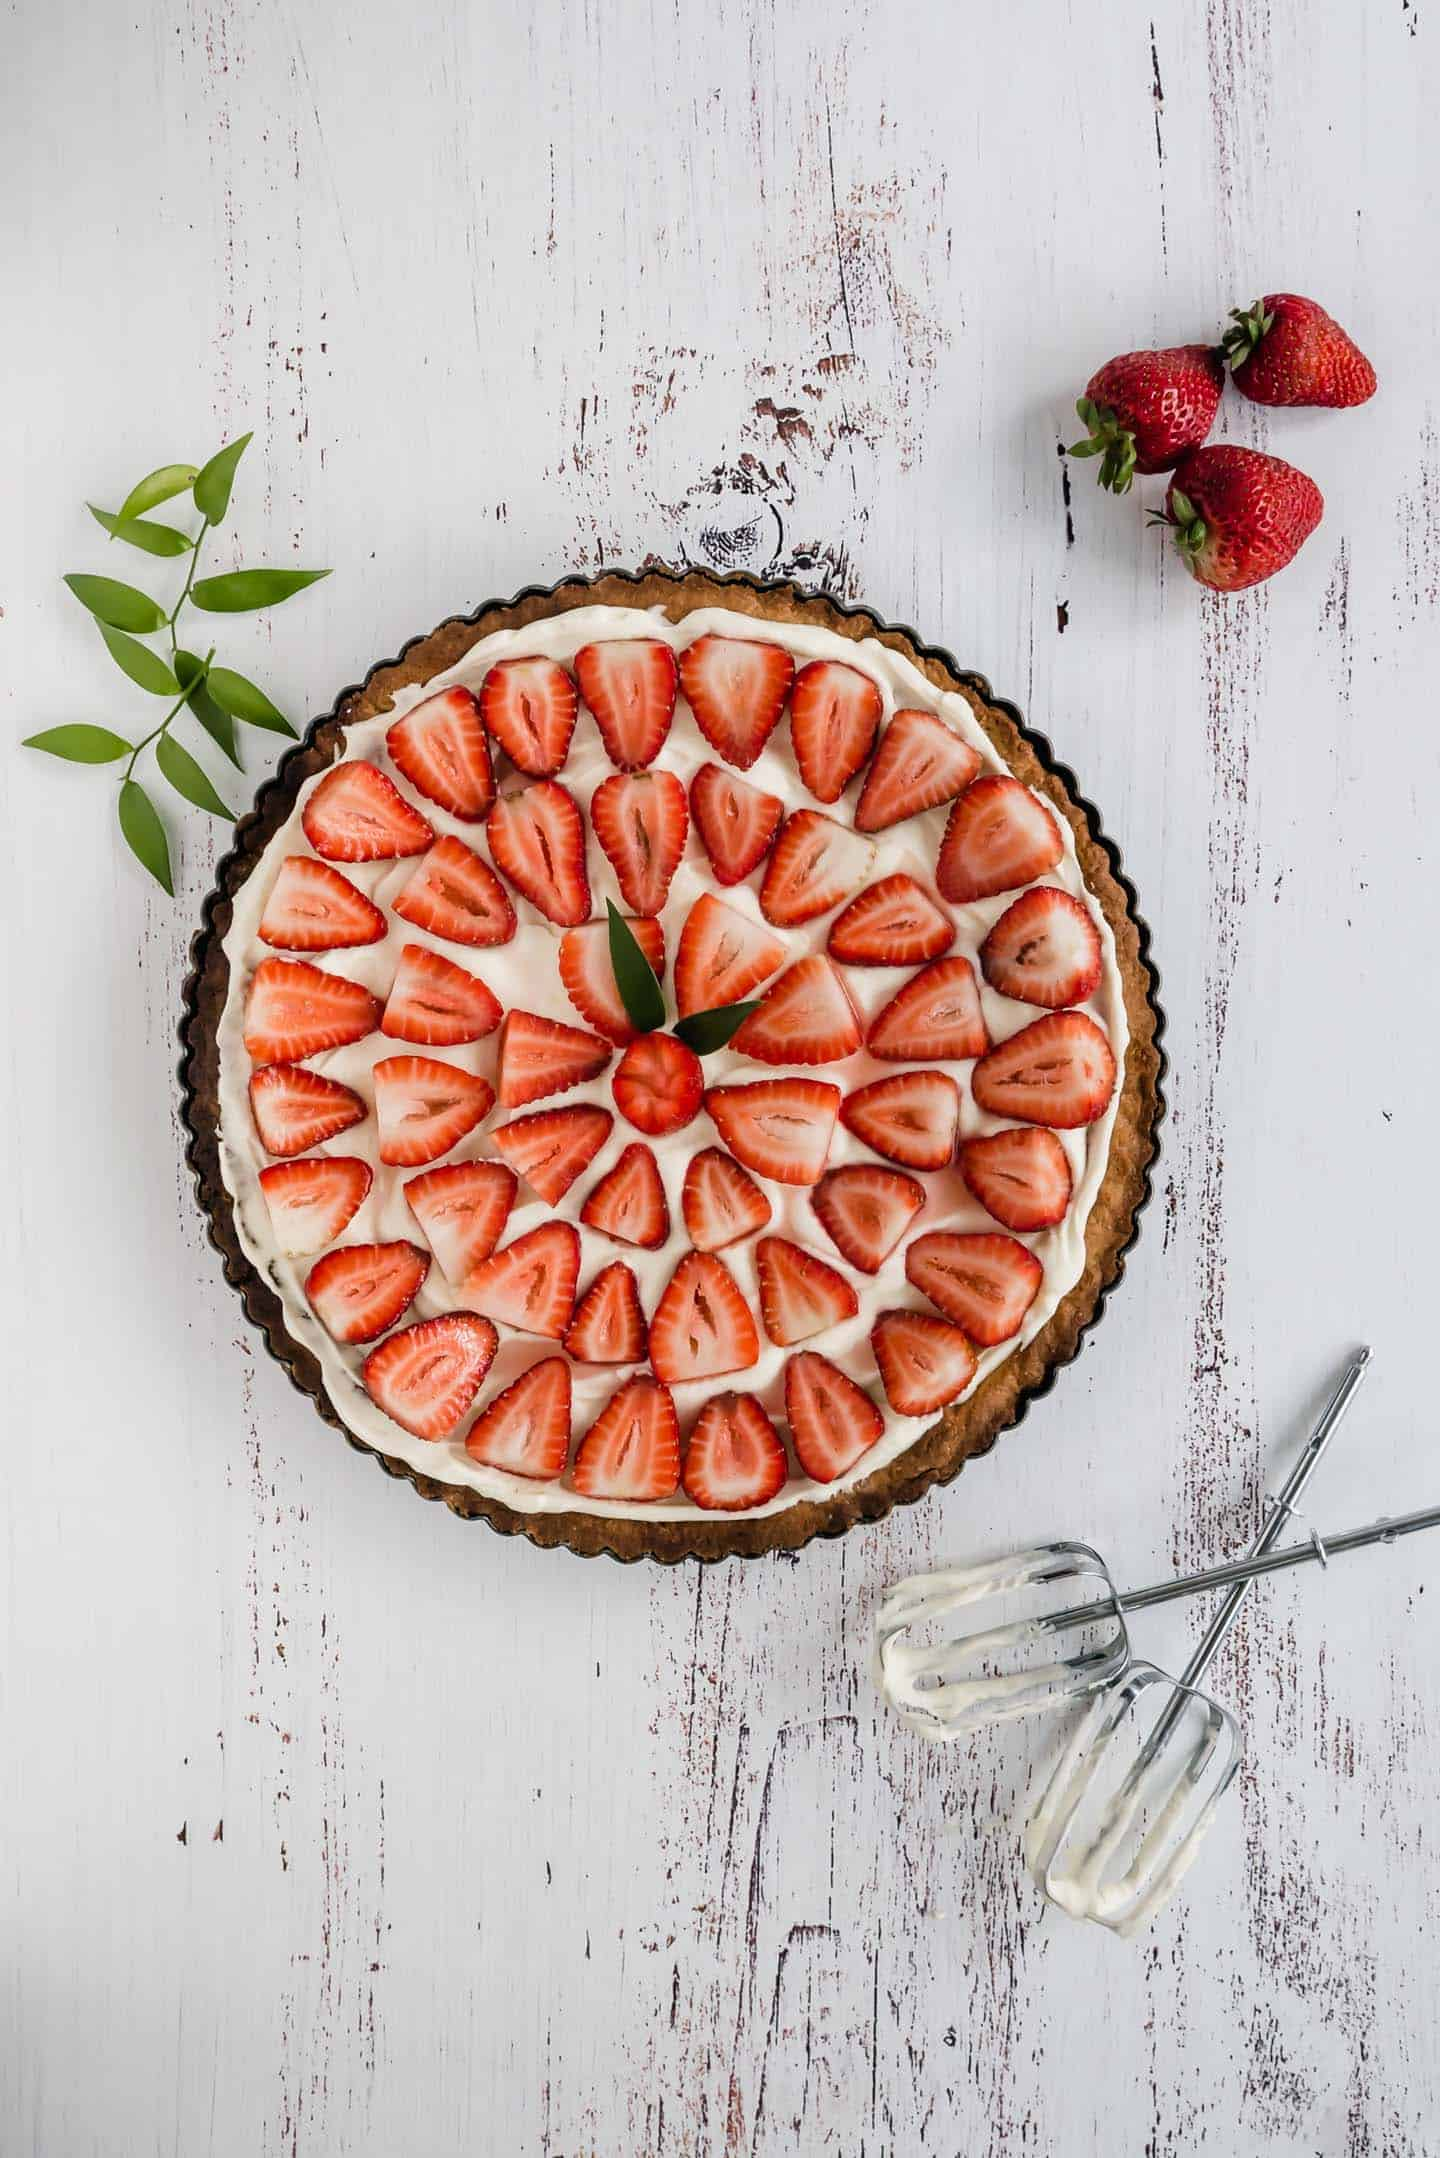 Traditional Strawberry and Cream Tart. Simple as a buttery shortbread crust, smooth creamy filling and a fresh strawberry topping.